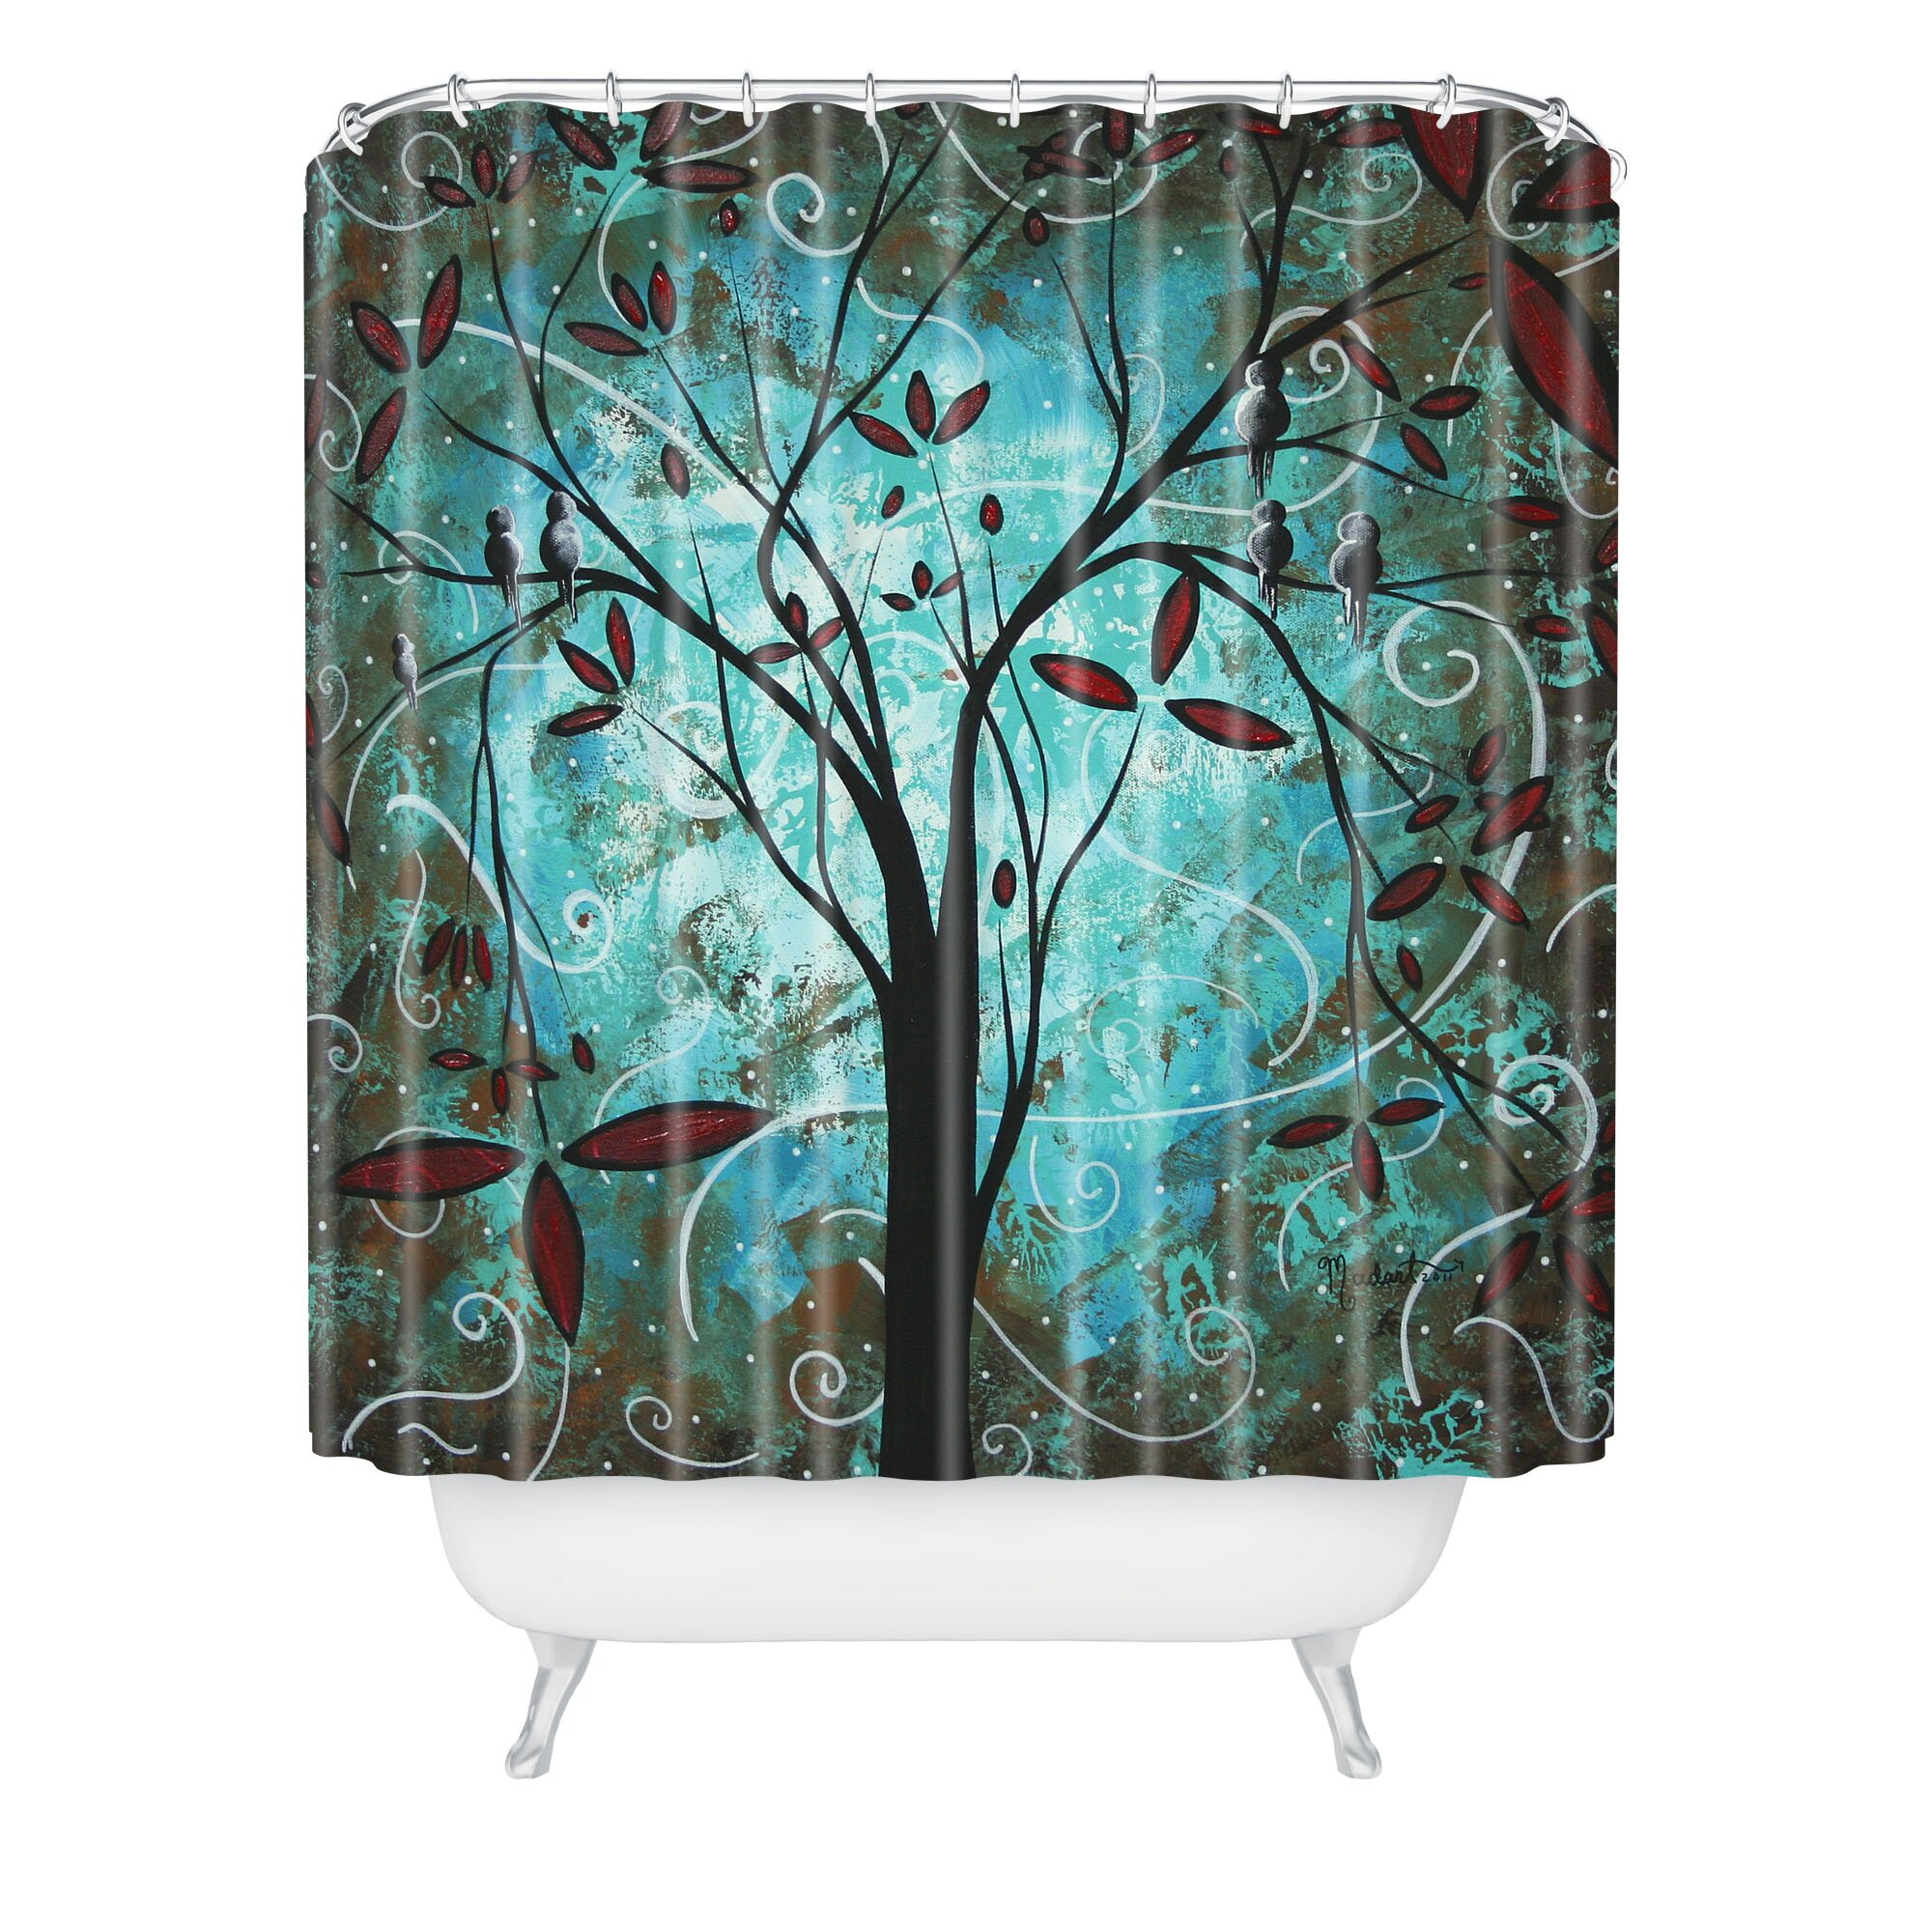 Deny Designs Madart Inc Romantic Evening Shower Curtain  Reviews - Brown and turquoise shower curtain